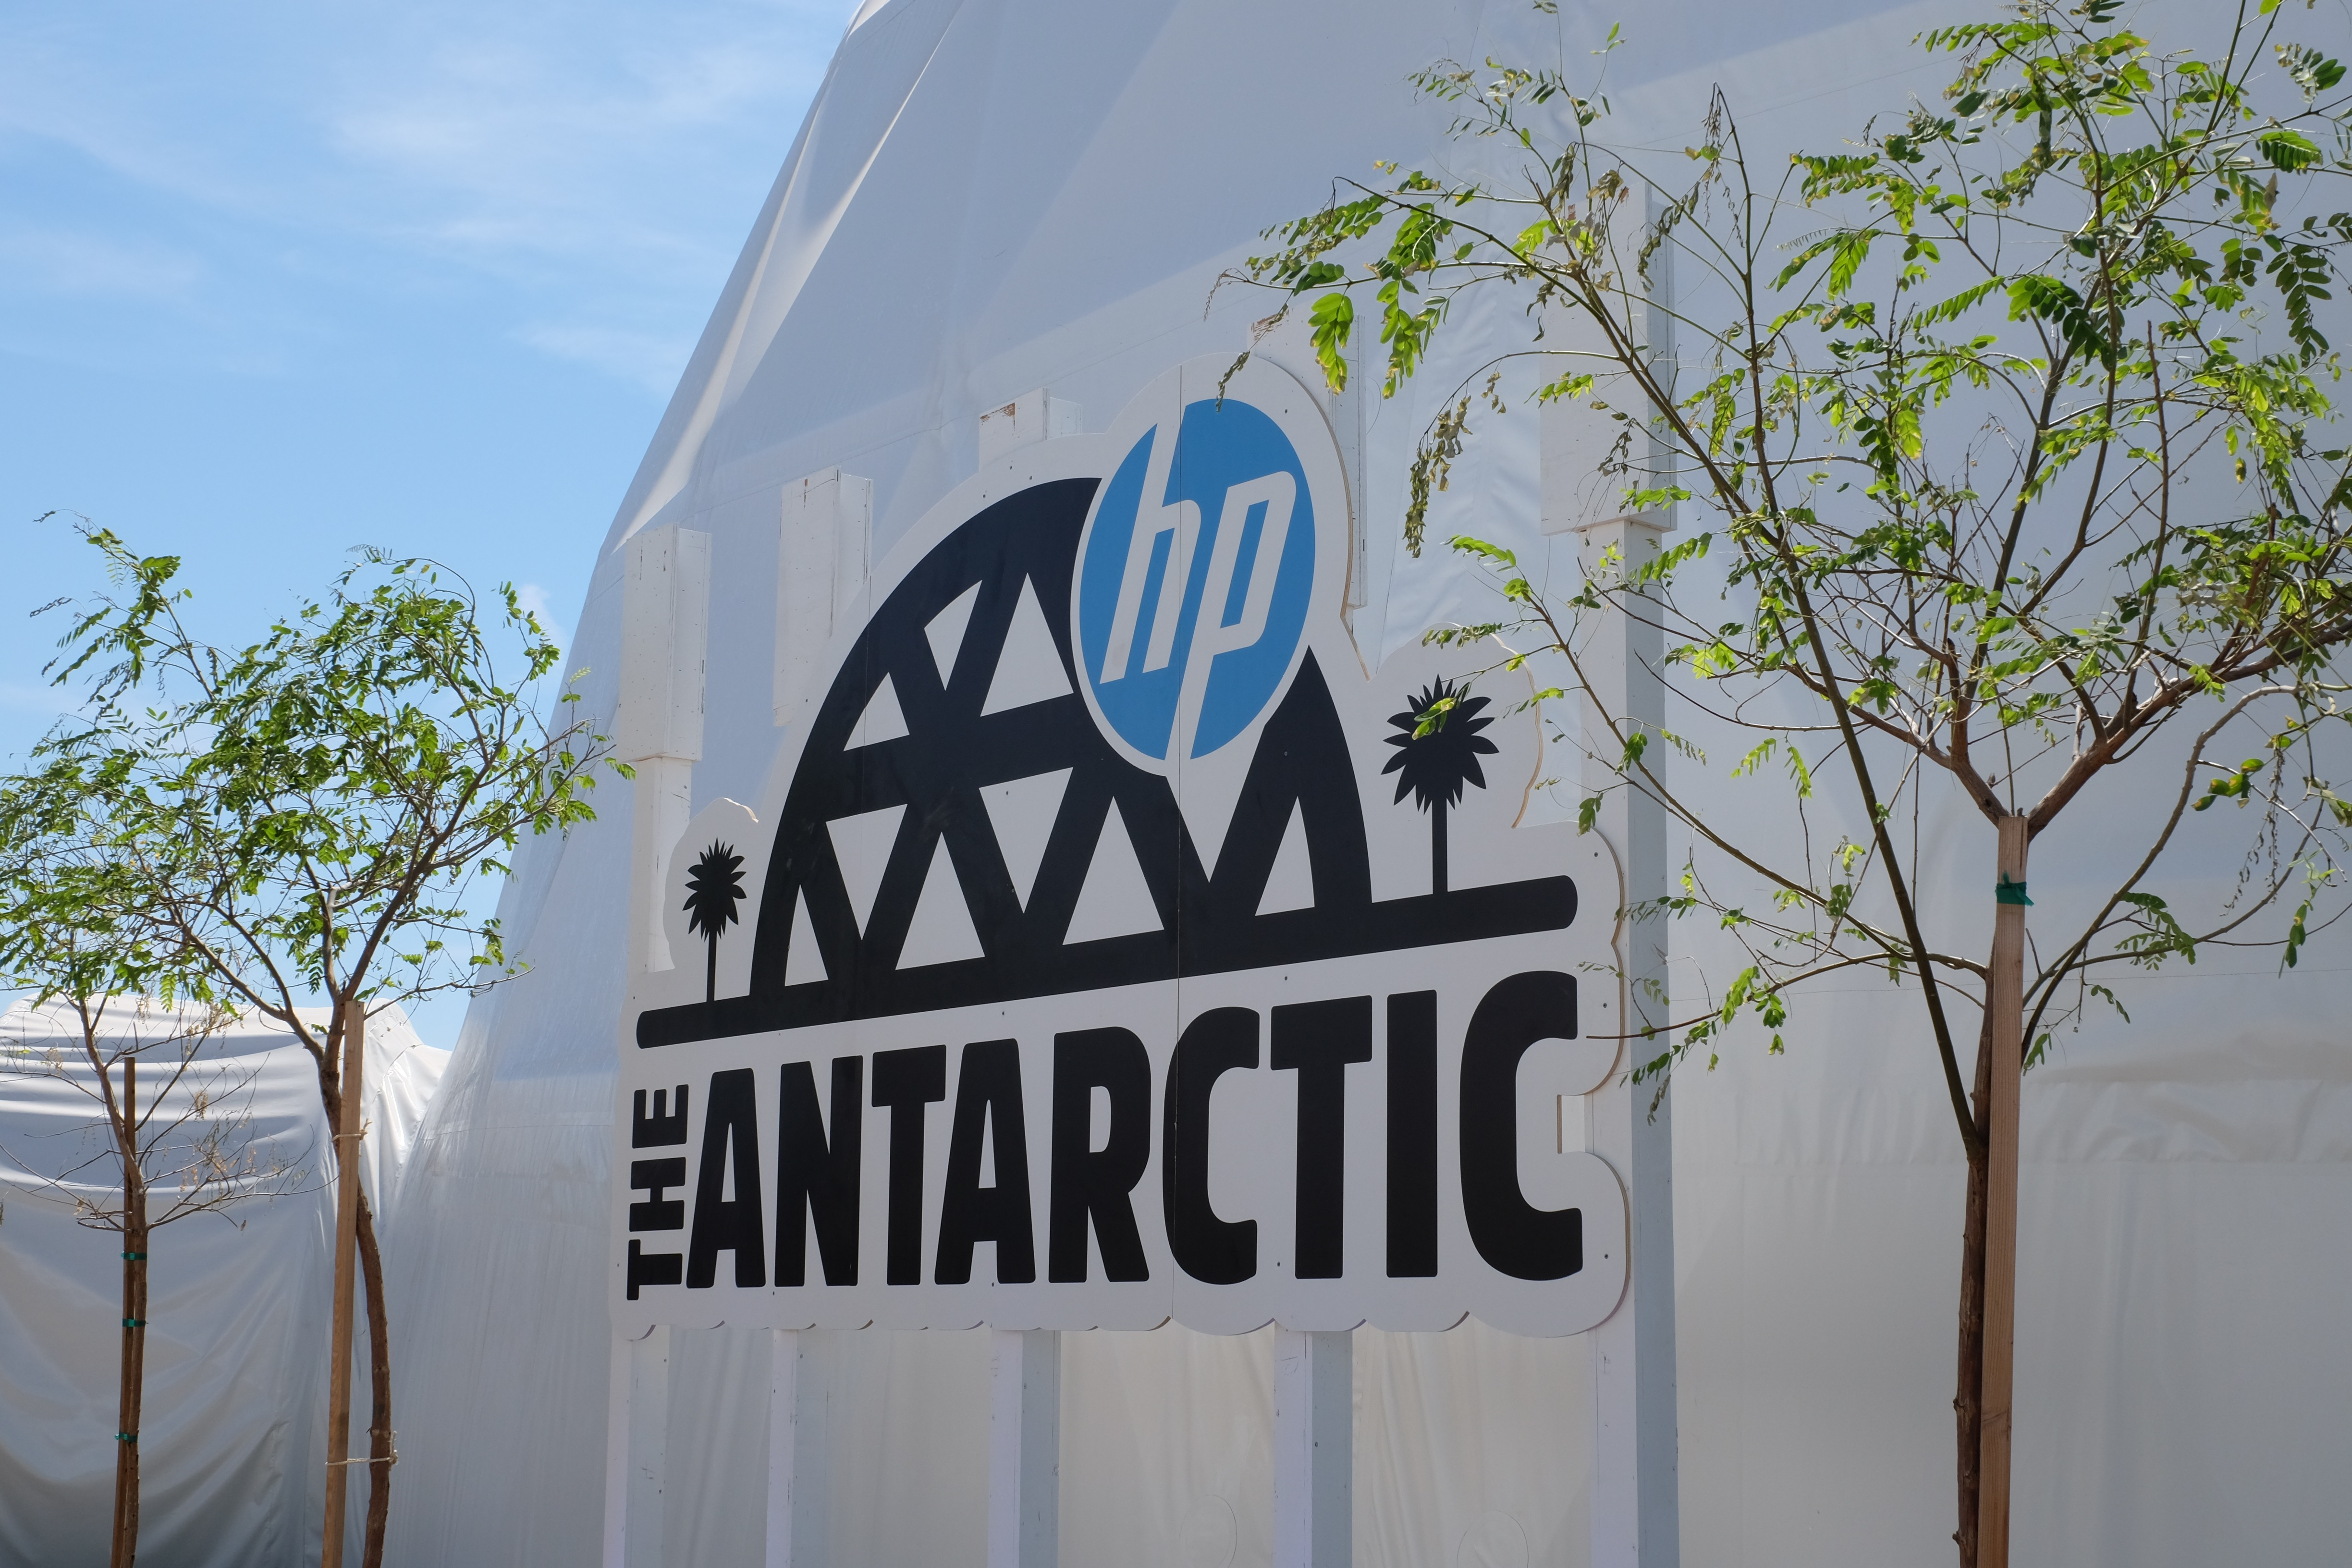 "Signage outside a tent that says ""The Antarctic"" with the HP logo"